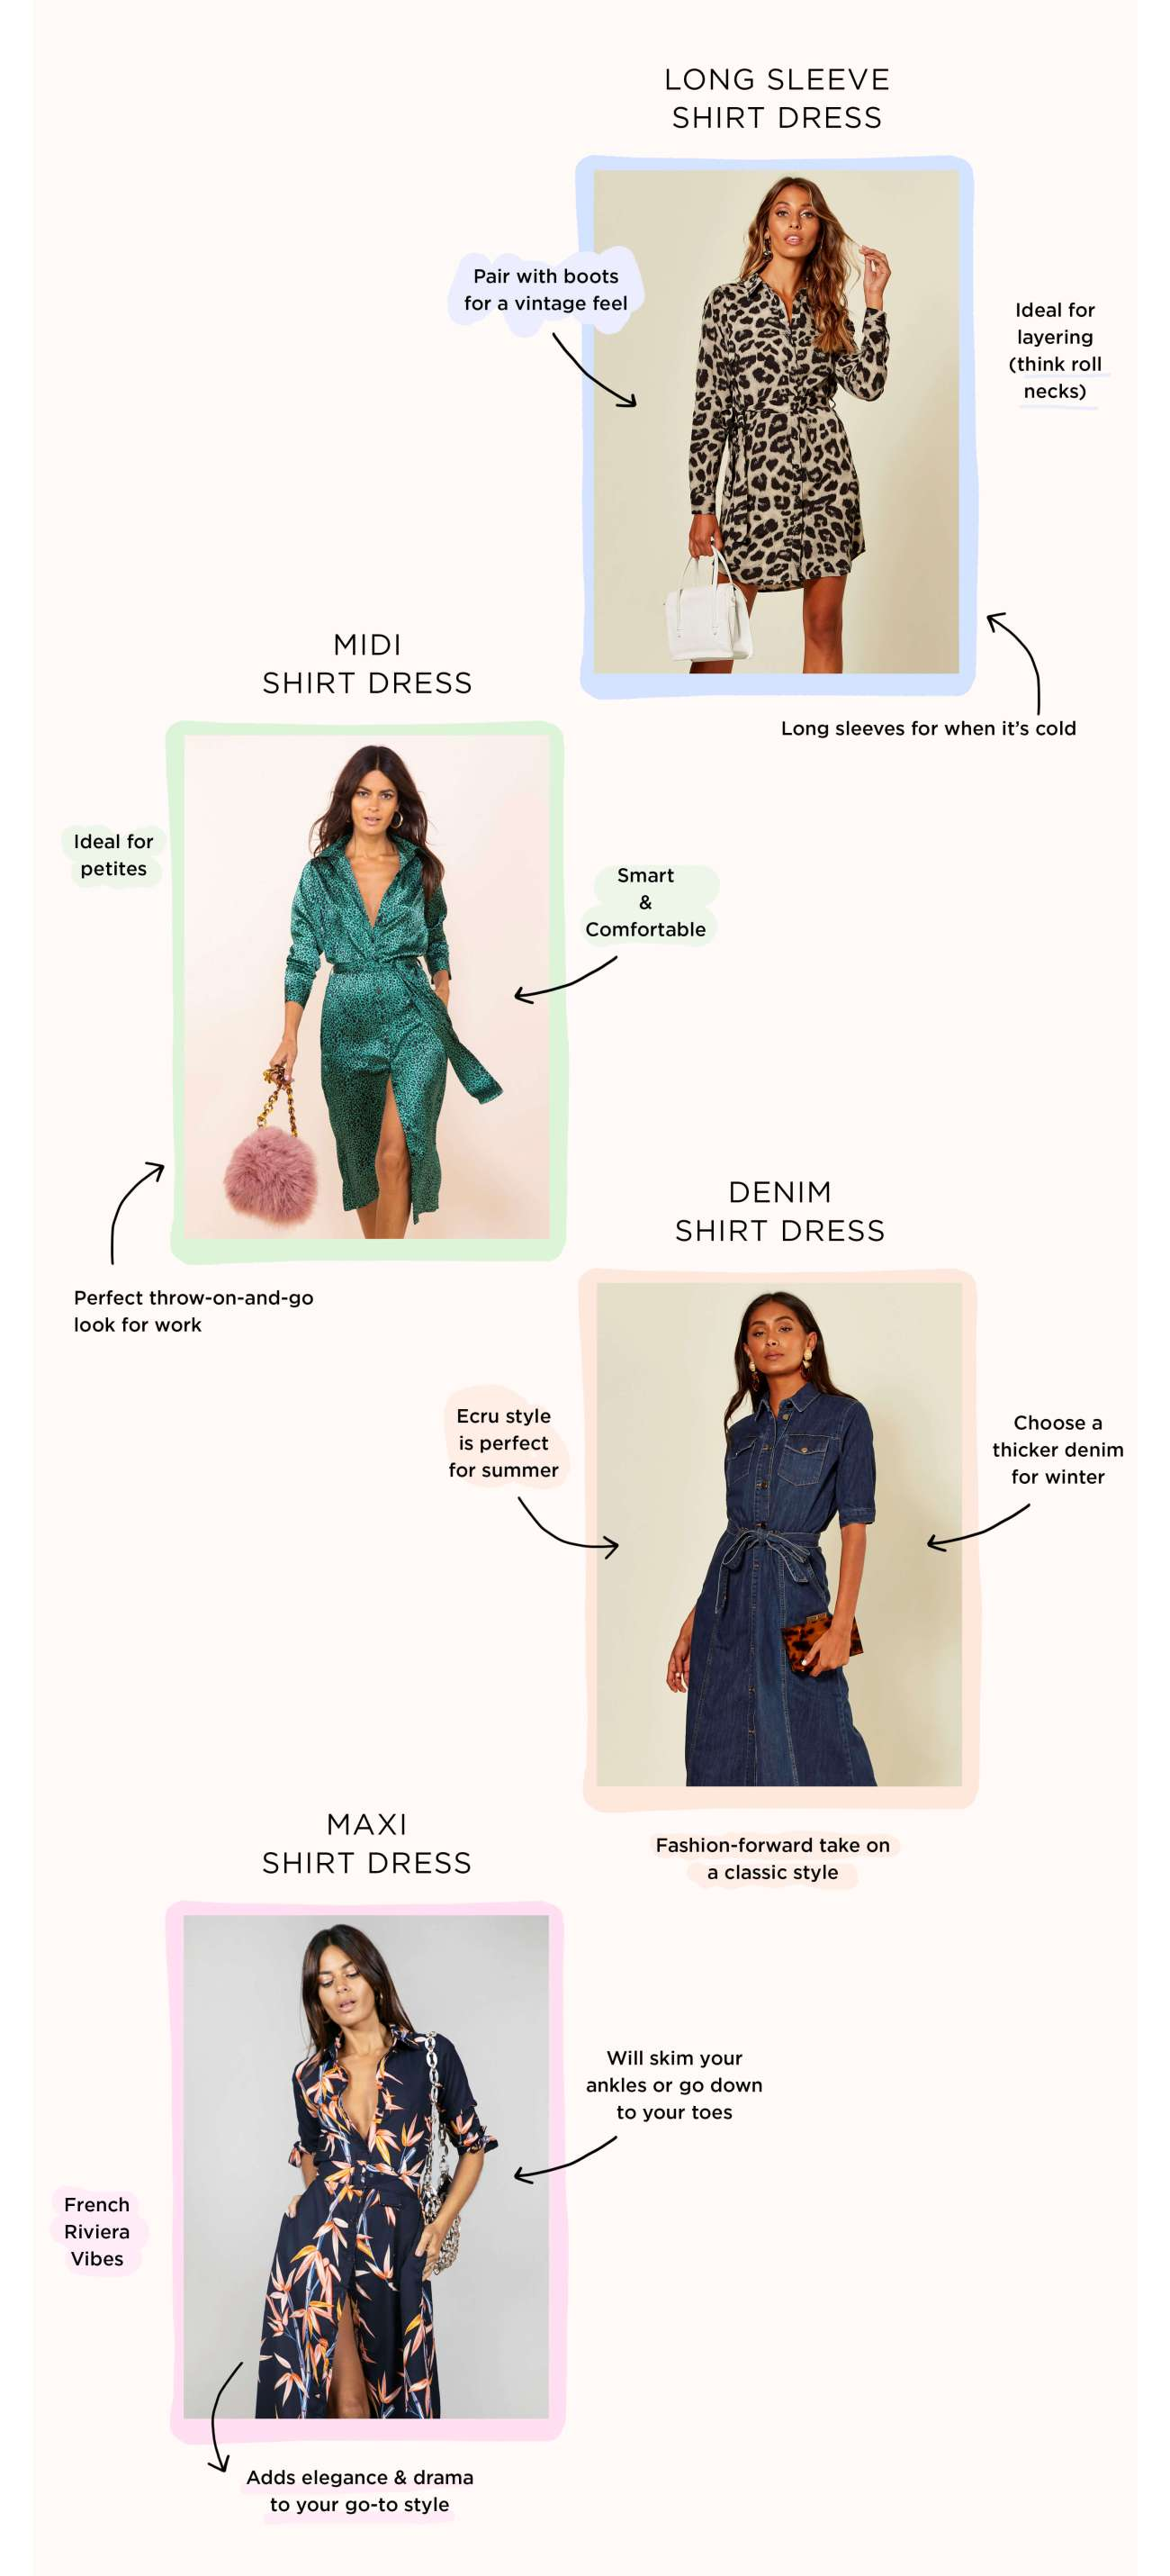 Four different types of shirt dress